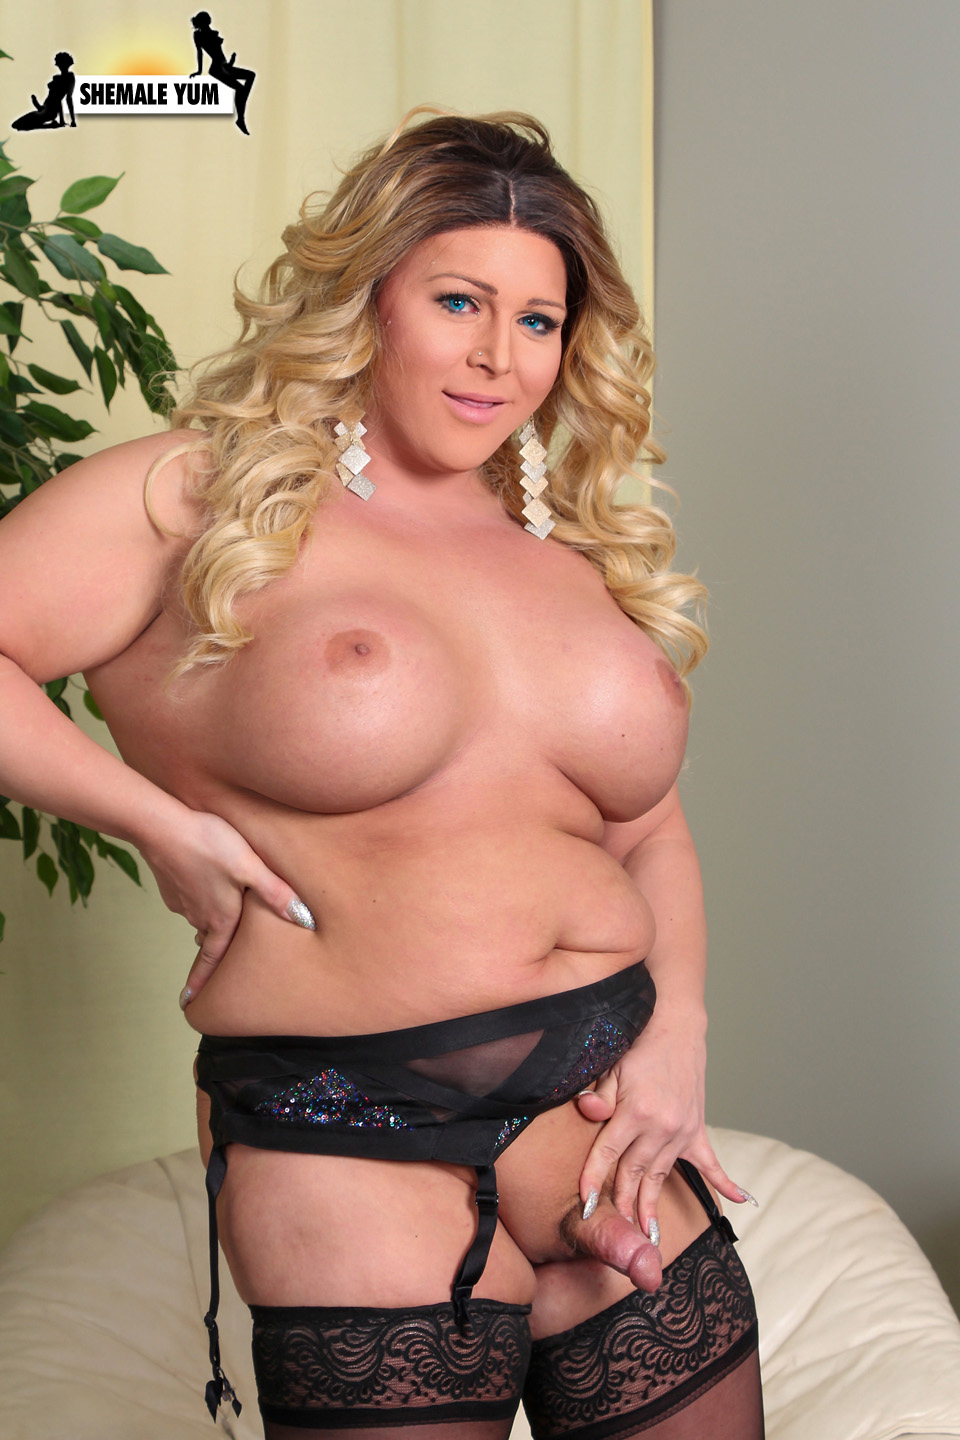 Huge thick creamy load creampie 4